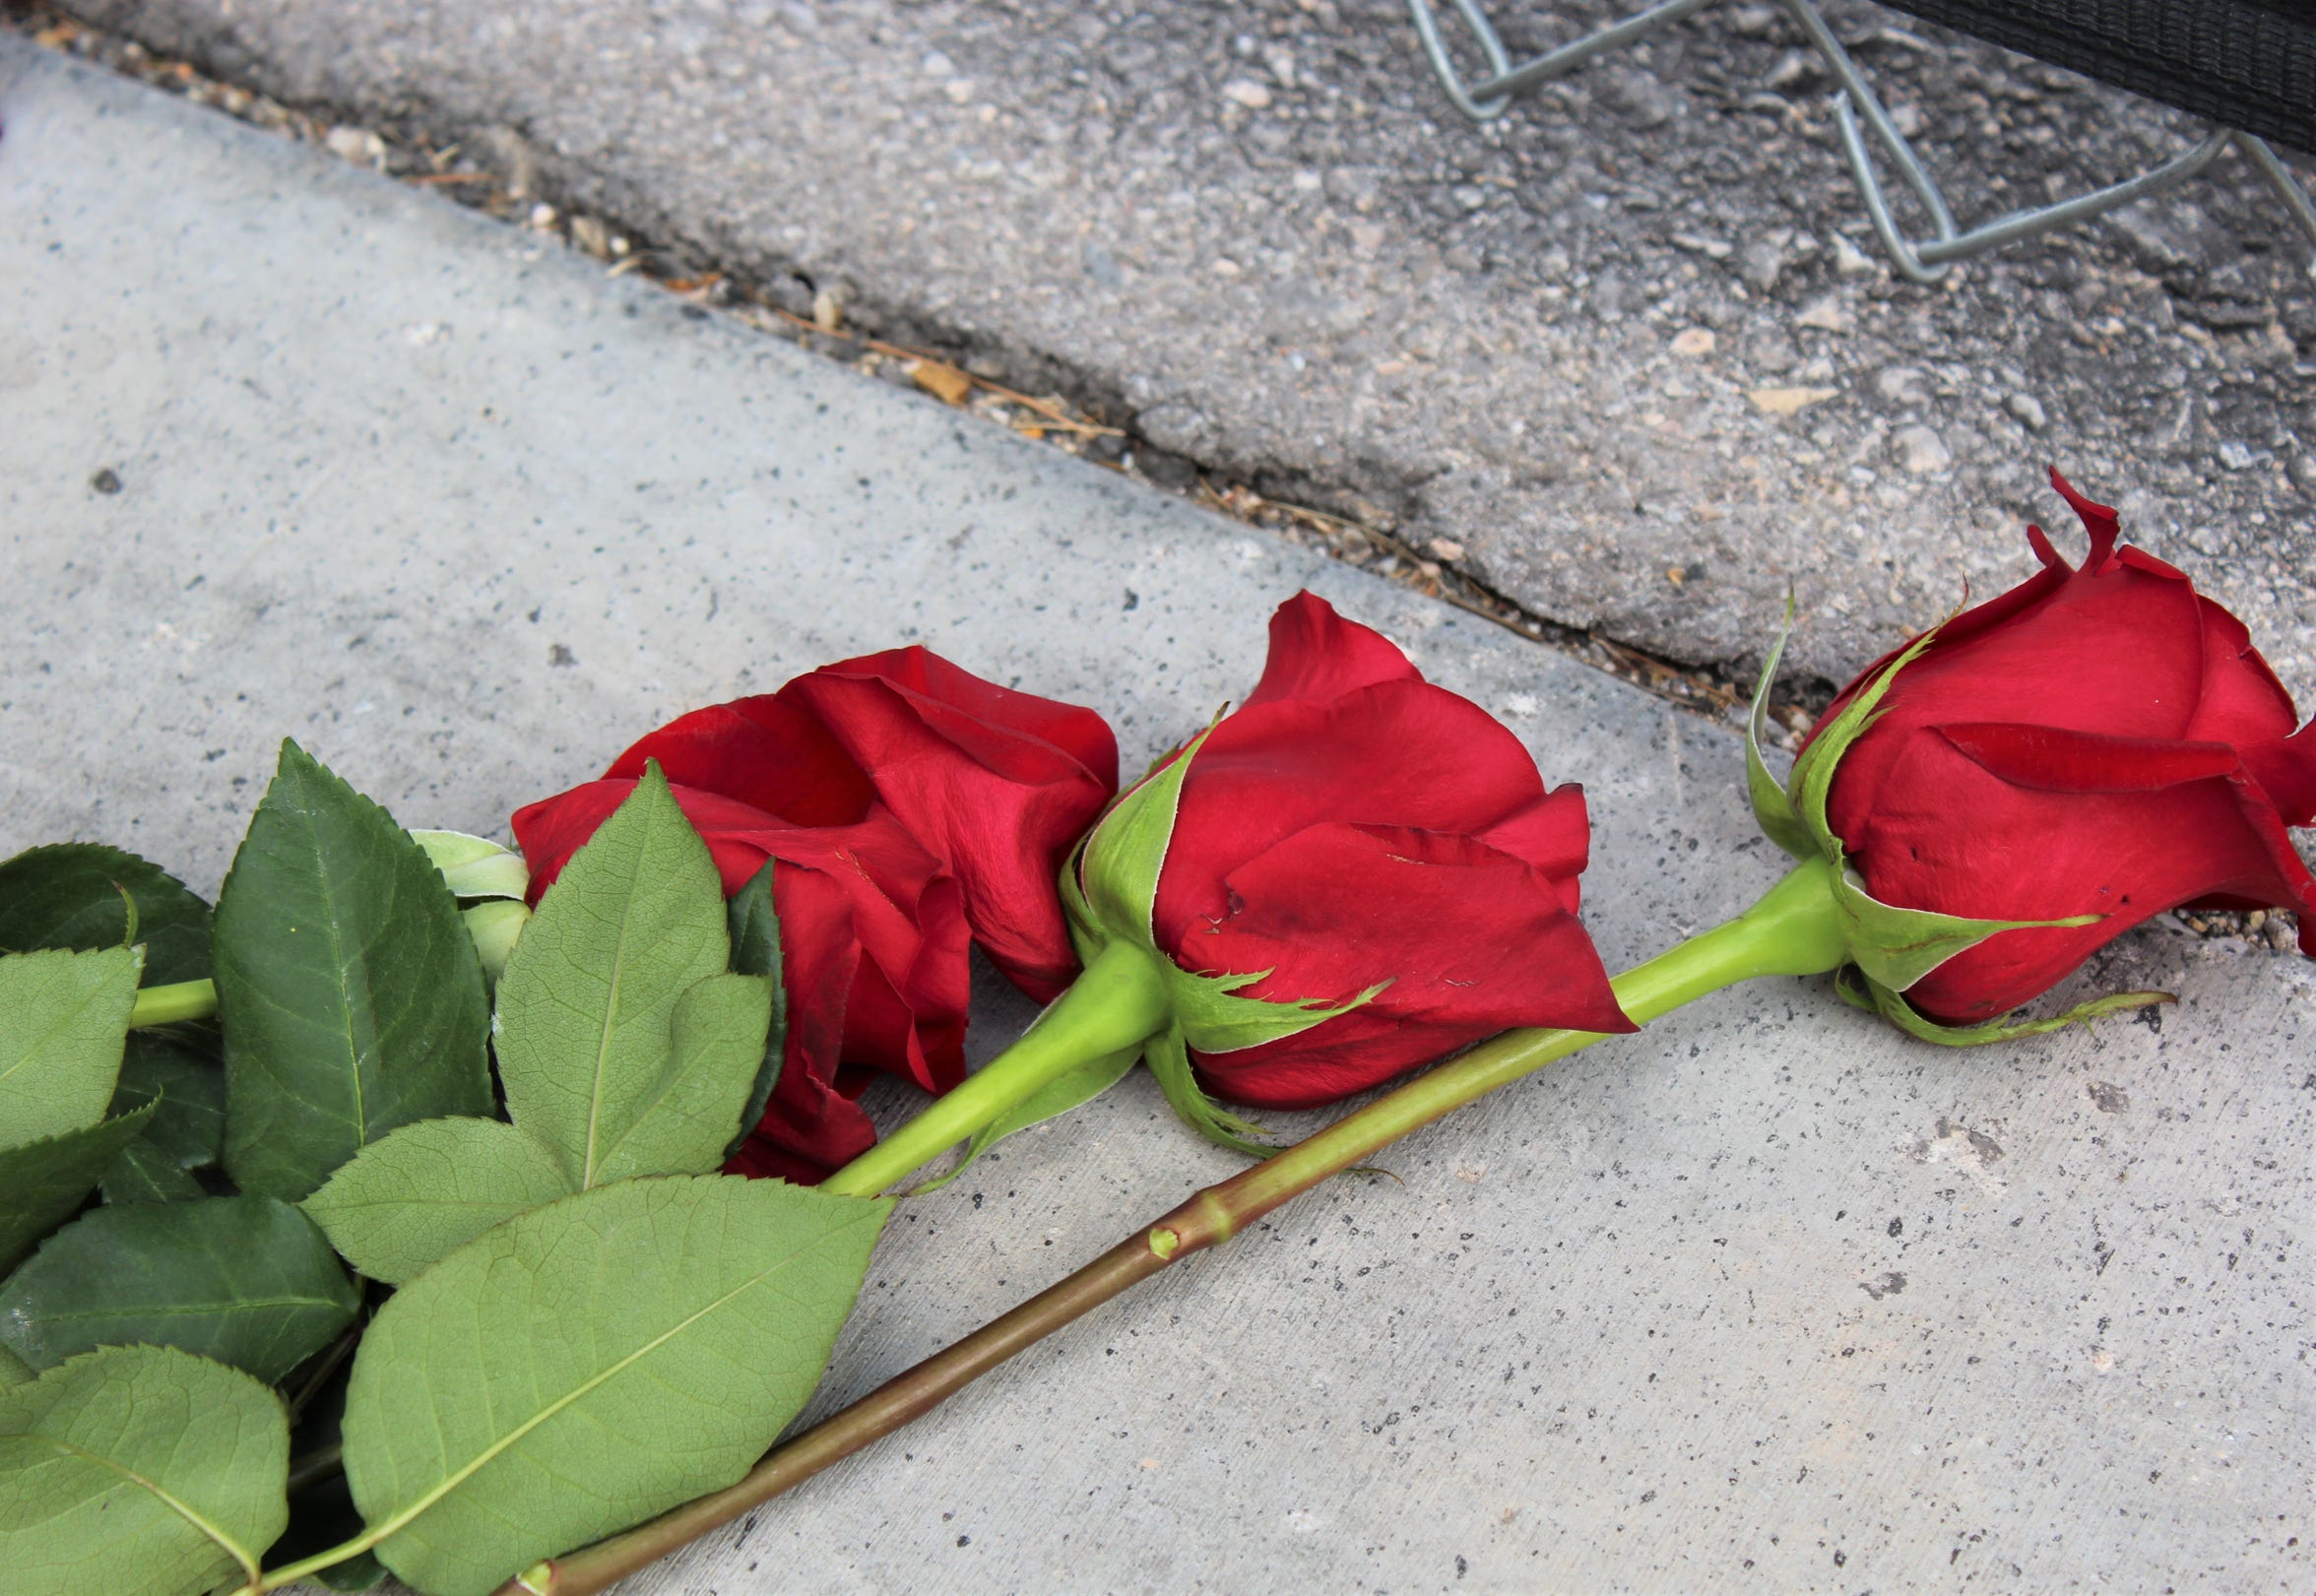 Fifty-nine roses were placed at a gate entrance to where thousands of concertgoers had gathered Oct. 1, 2017. A man began shooting from a hotel room across the street, killing 58 and injuring almost 1,000 more.